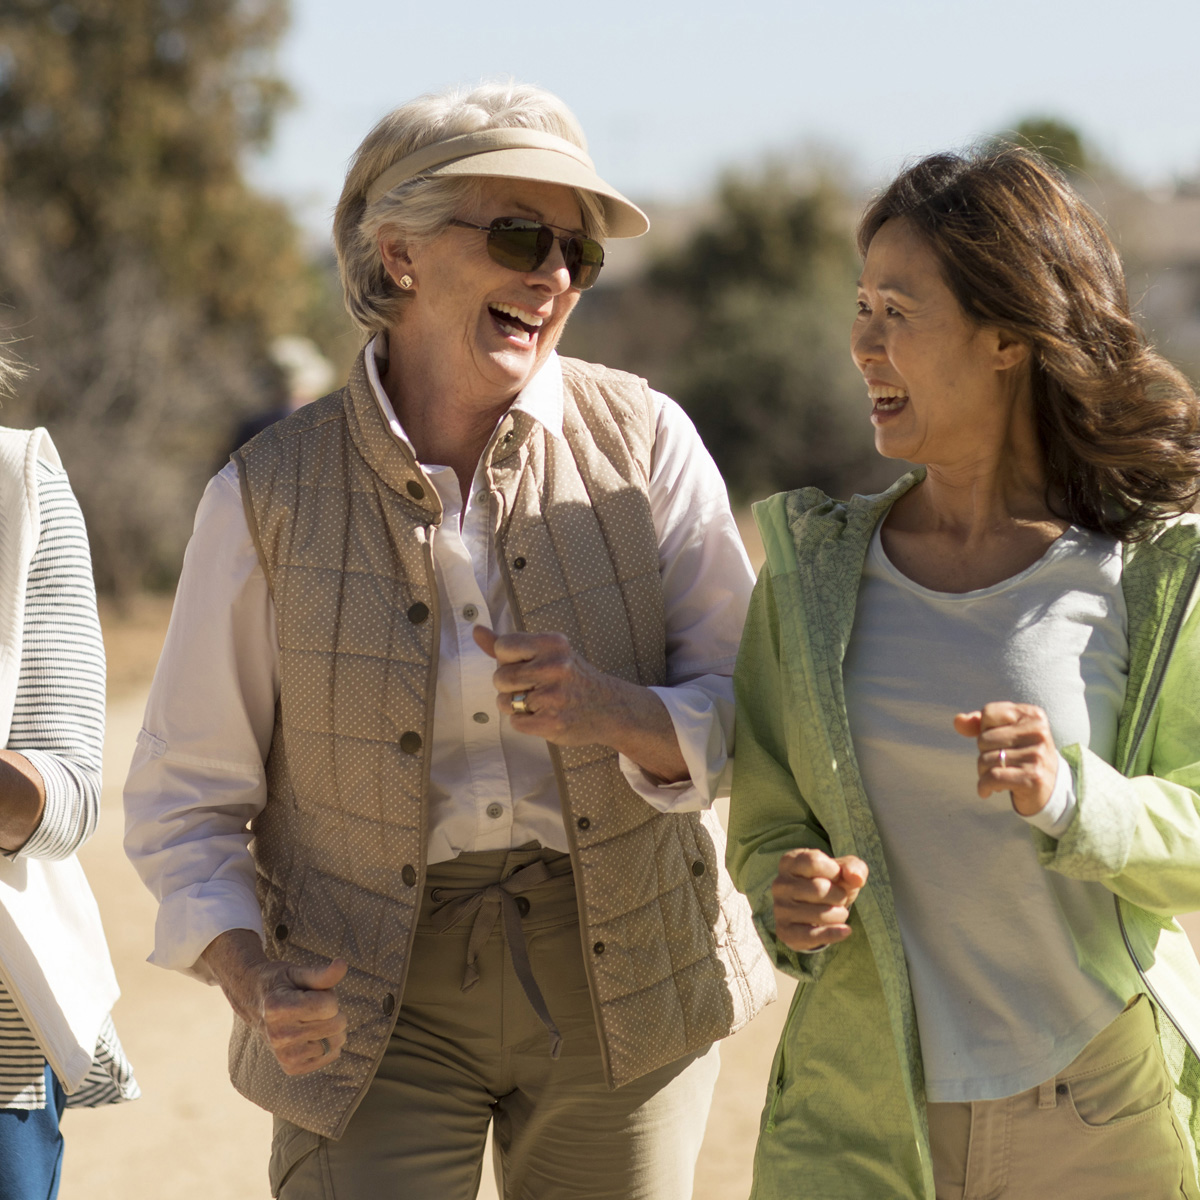 Smiling senior women walking outdoors